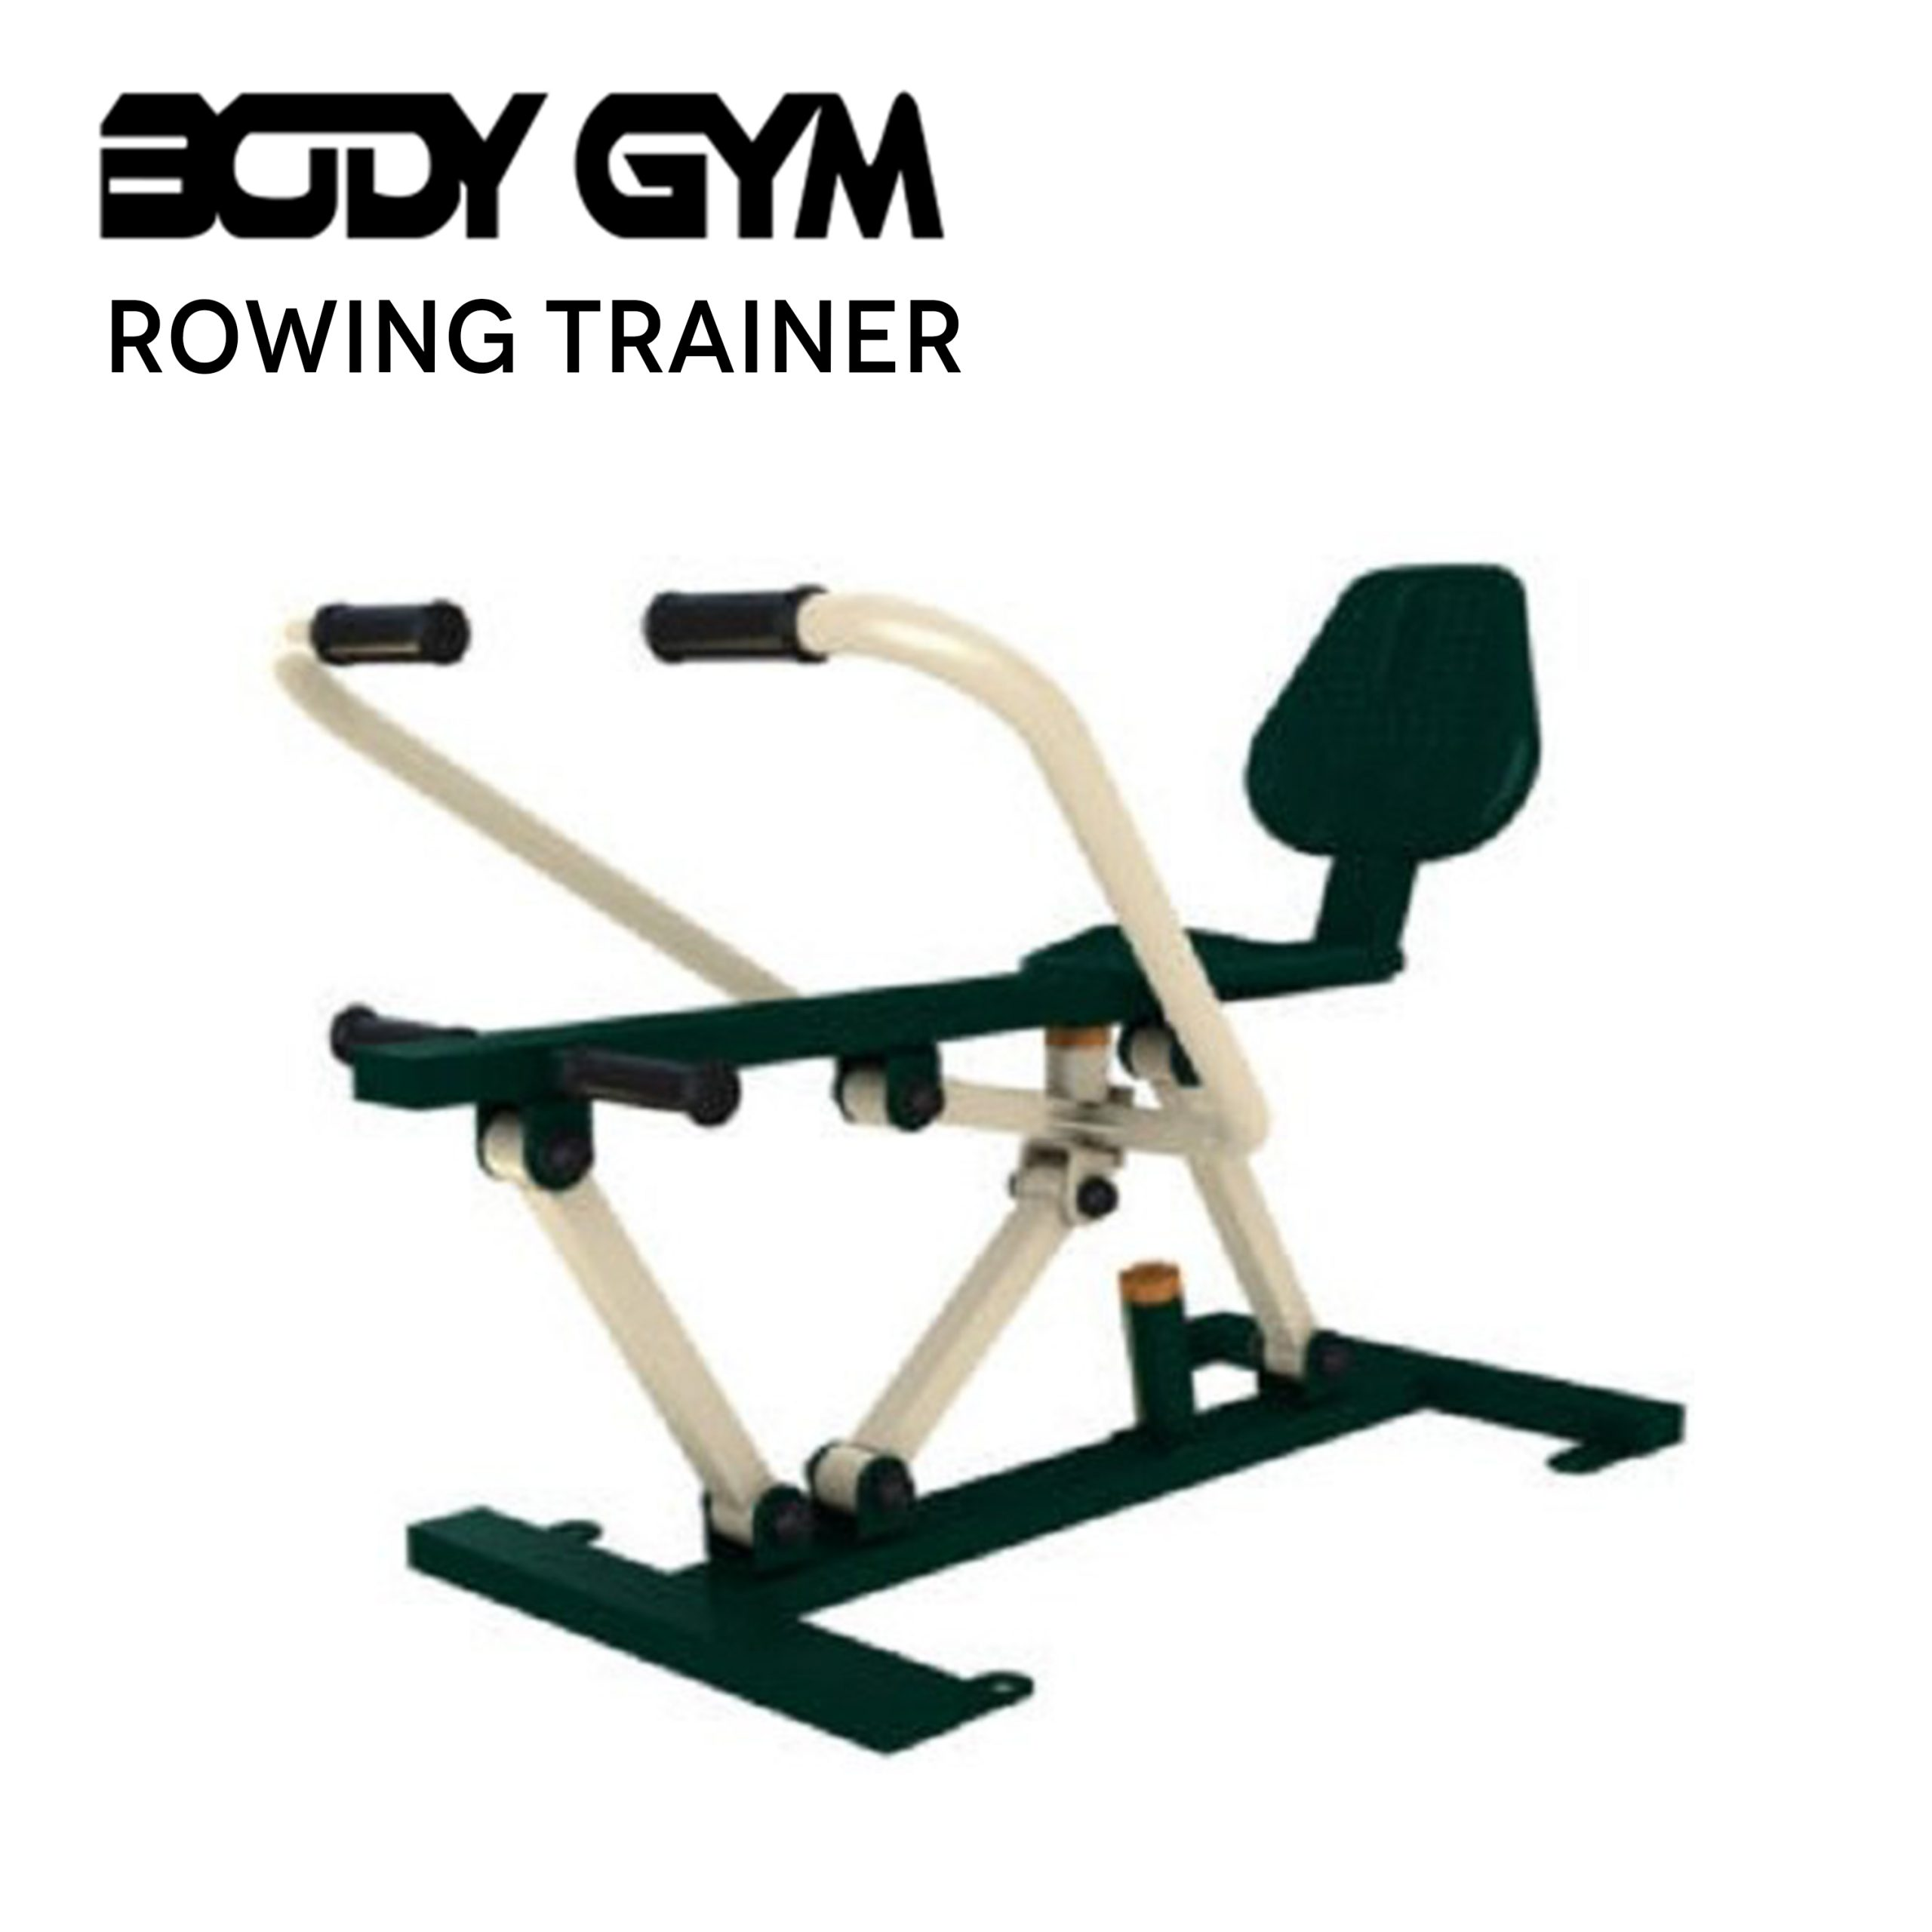 ROWING TRAINER AFO 06 ALAT FITNESS OUTDOOR TAMAN HOTEL scaled - Rowing Machine - Alat Fitness Outdoor Premium Quality - AFO-60